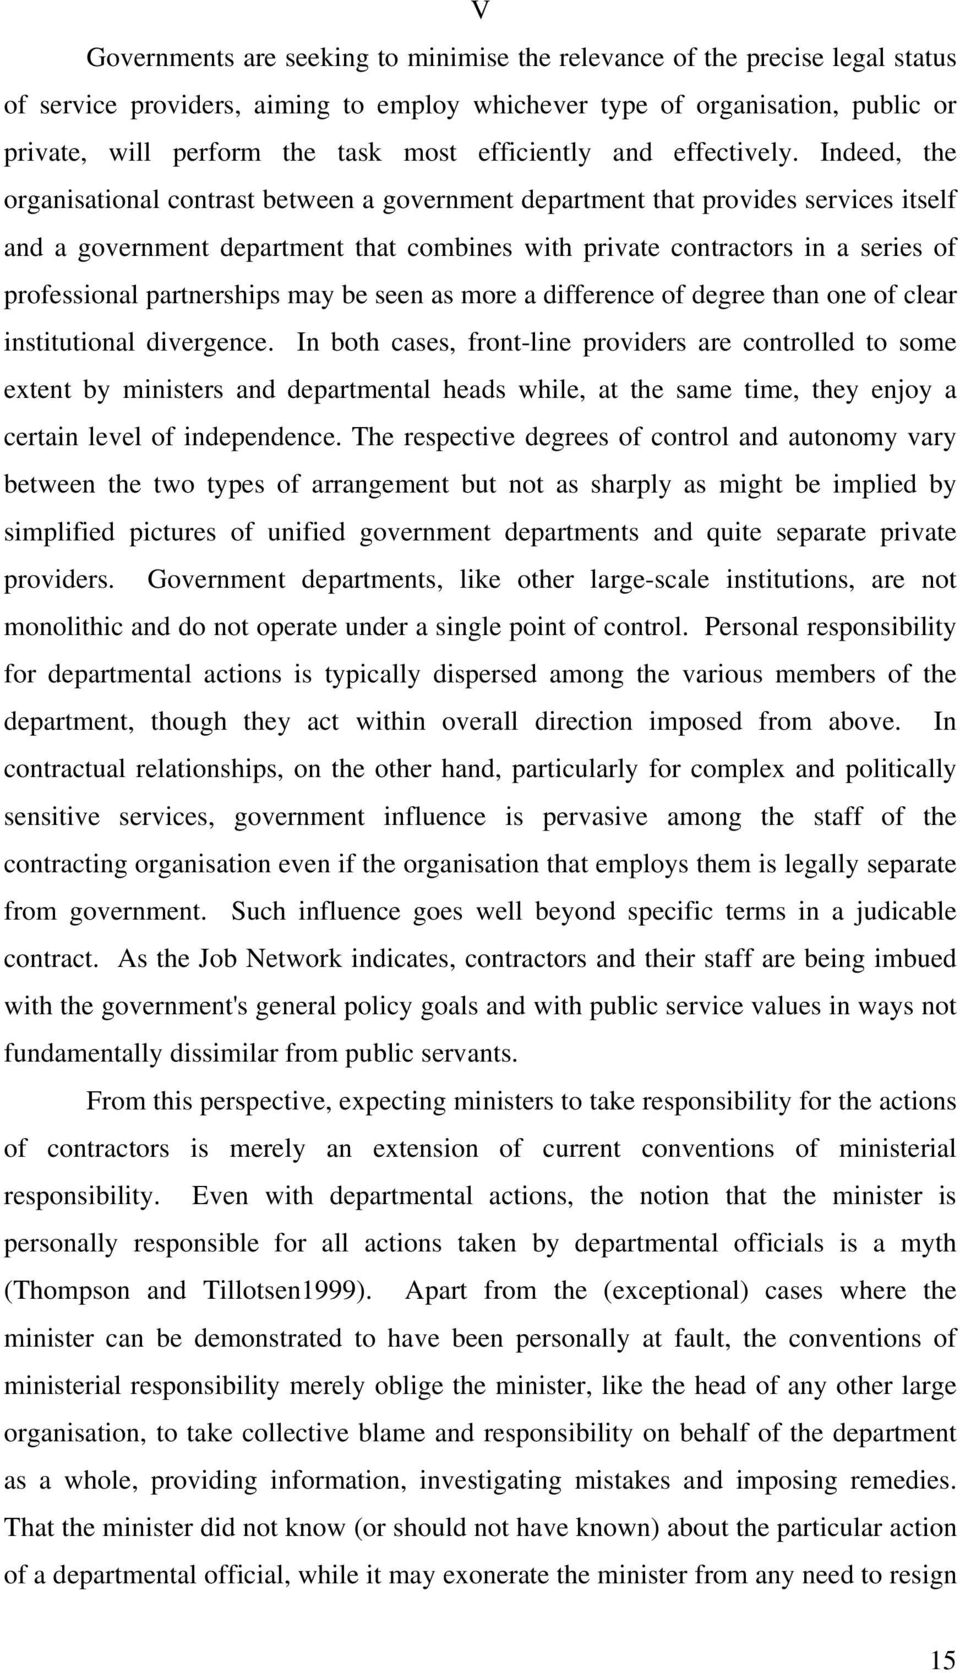 Indeed, the organisational contrast between a government department that provides services itself and a government department that combines with private contractors in a series of professional